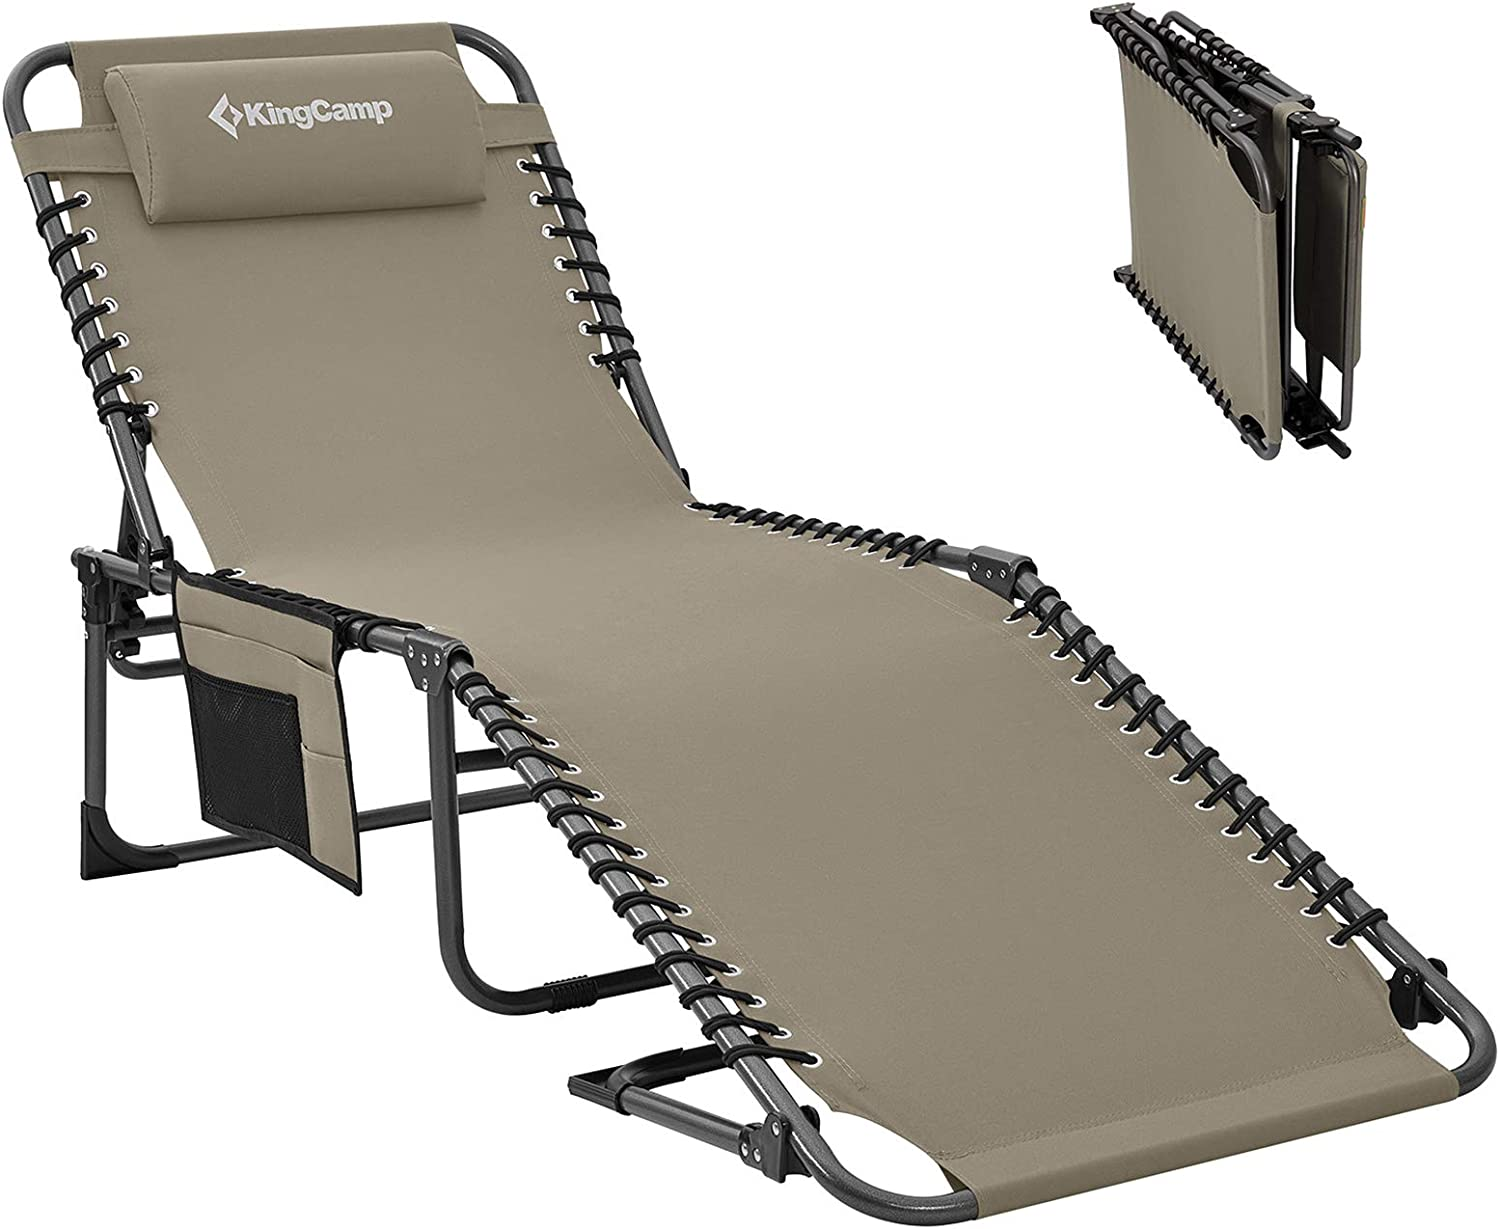 KingCamp 4-Fold Outdoor Folding Chaise Lounge Chair for Beach, Sunbathing, Patio, Pool, Lawn, Deck, Portable Lightweight Heavy-Duty Adjustable Camping Reclining Chair with Pillow, Gray